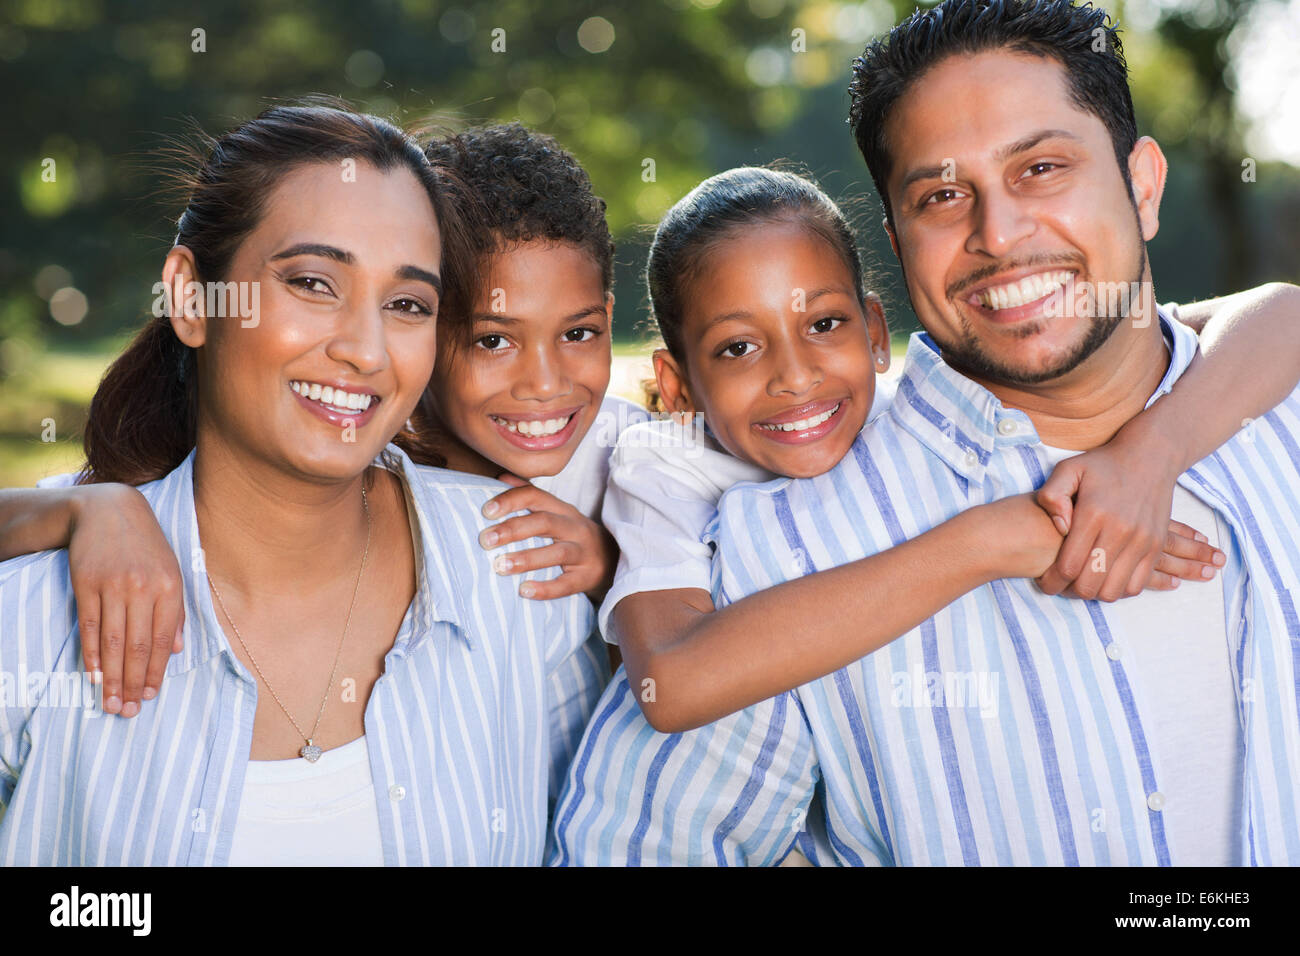 portrait of Indian family having fun together outdoors - Stock Image